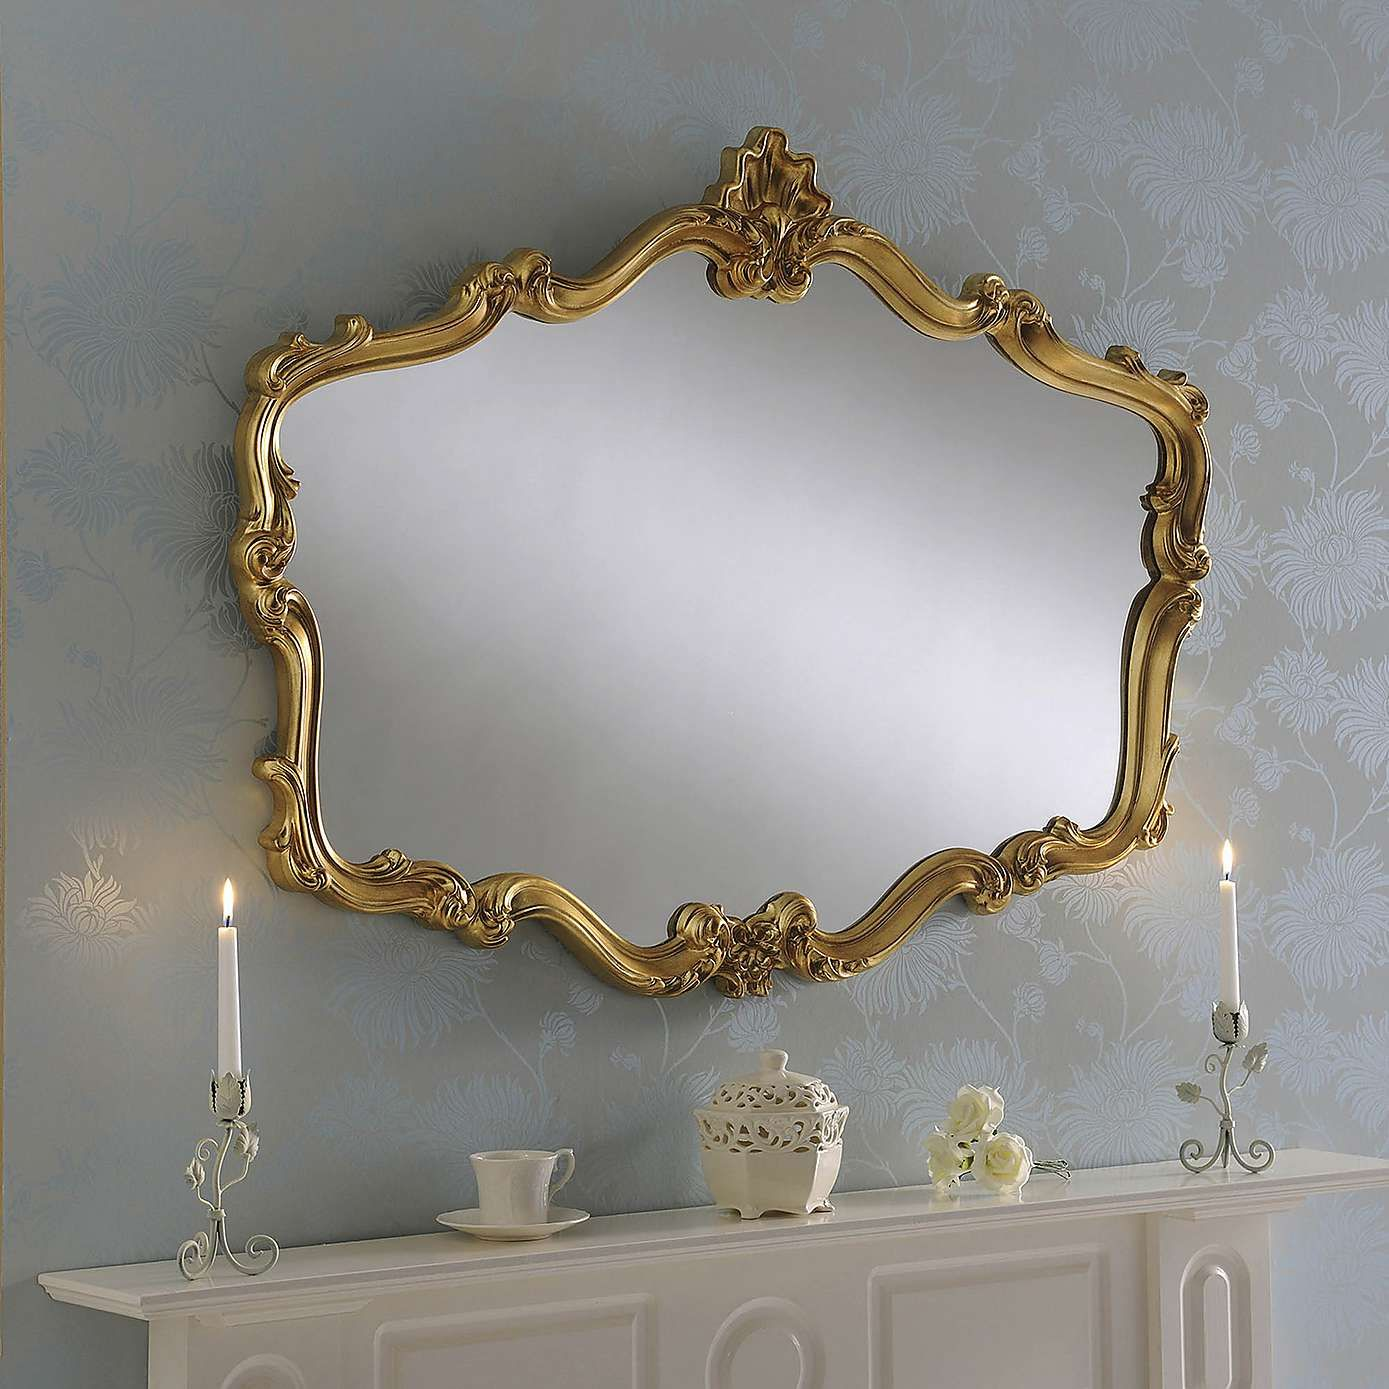 versaille gold wall mirror dunelm modern mirror wall on ideas for decorating entryway contemporary wall mirrors id=92125